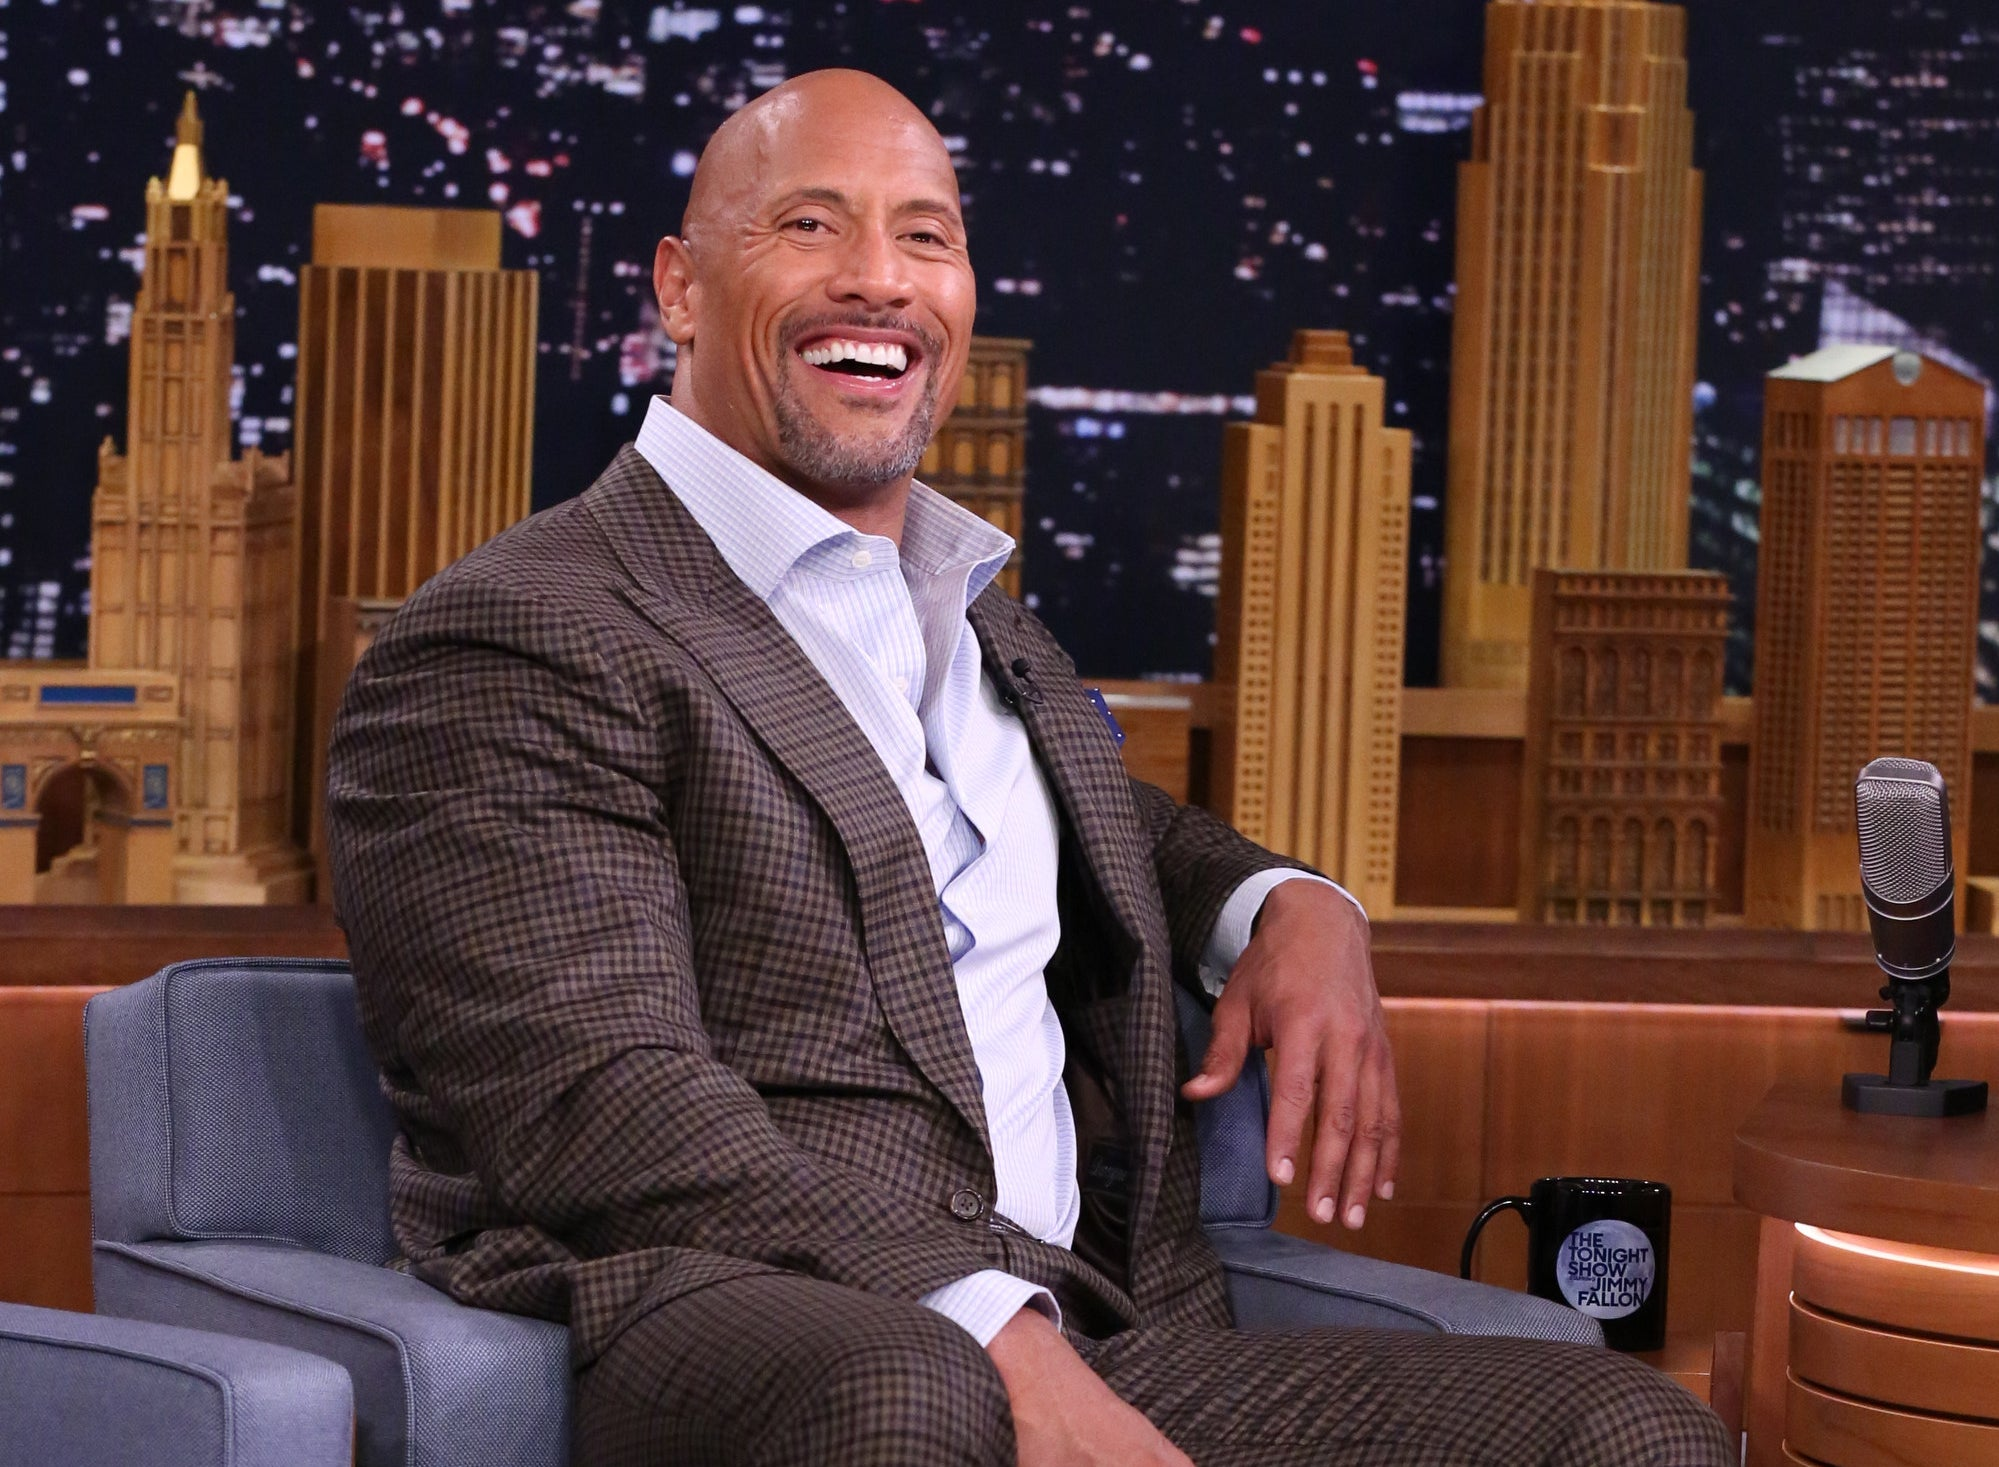 Dwayne laughs while on set at a night show.